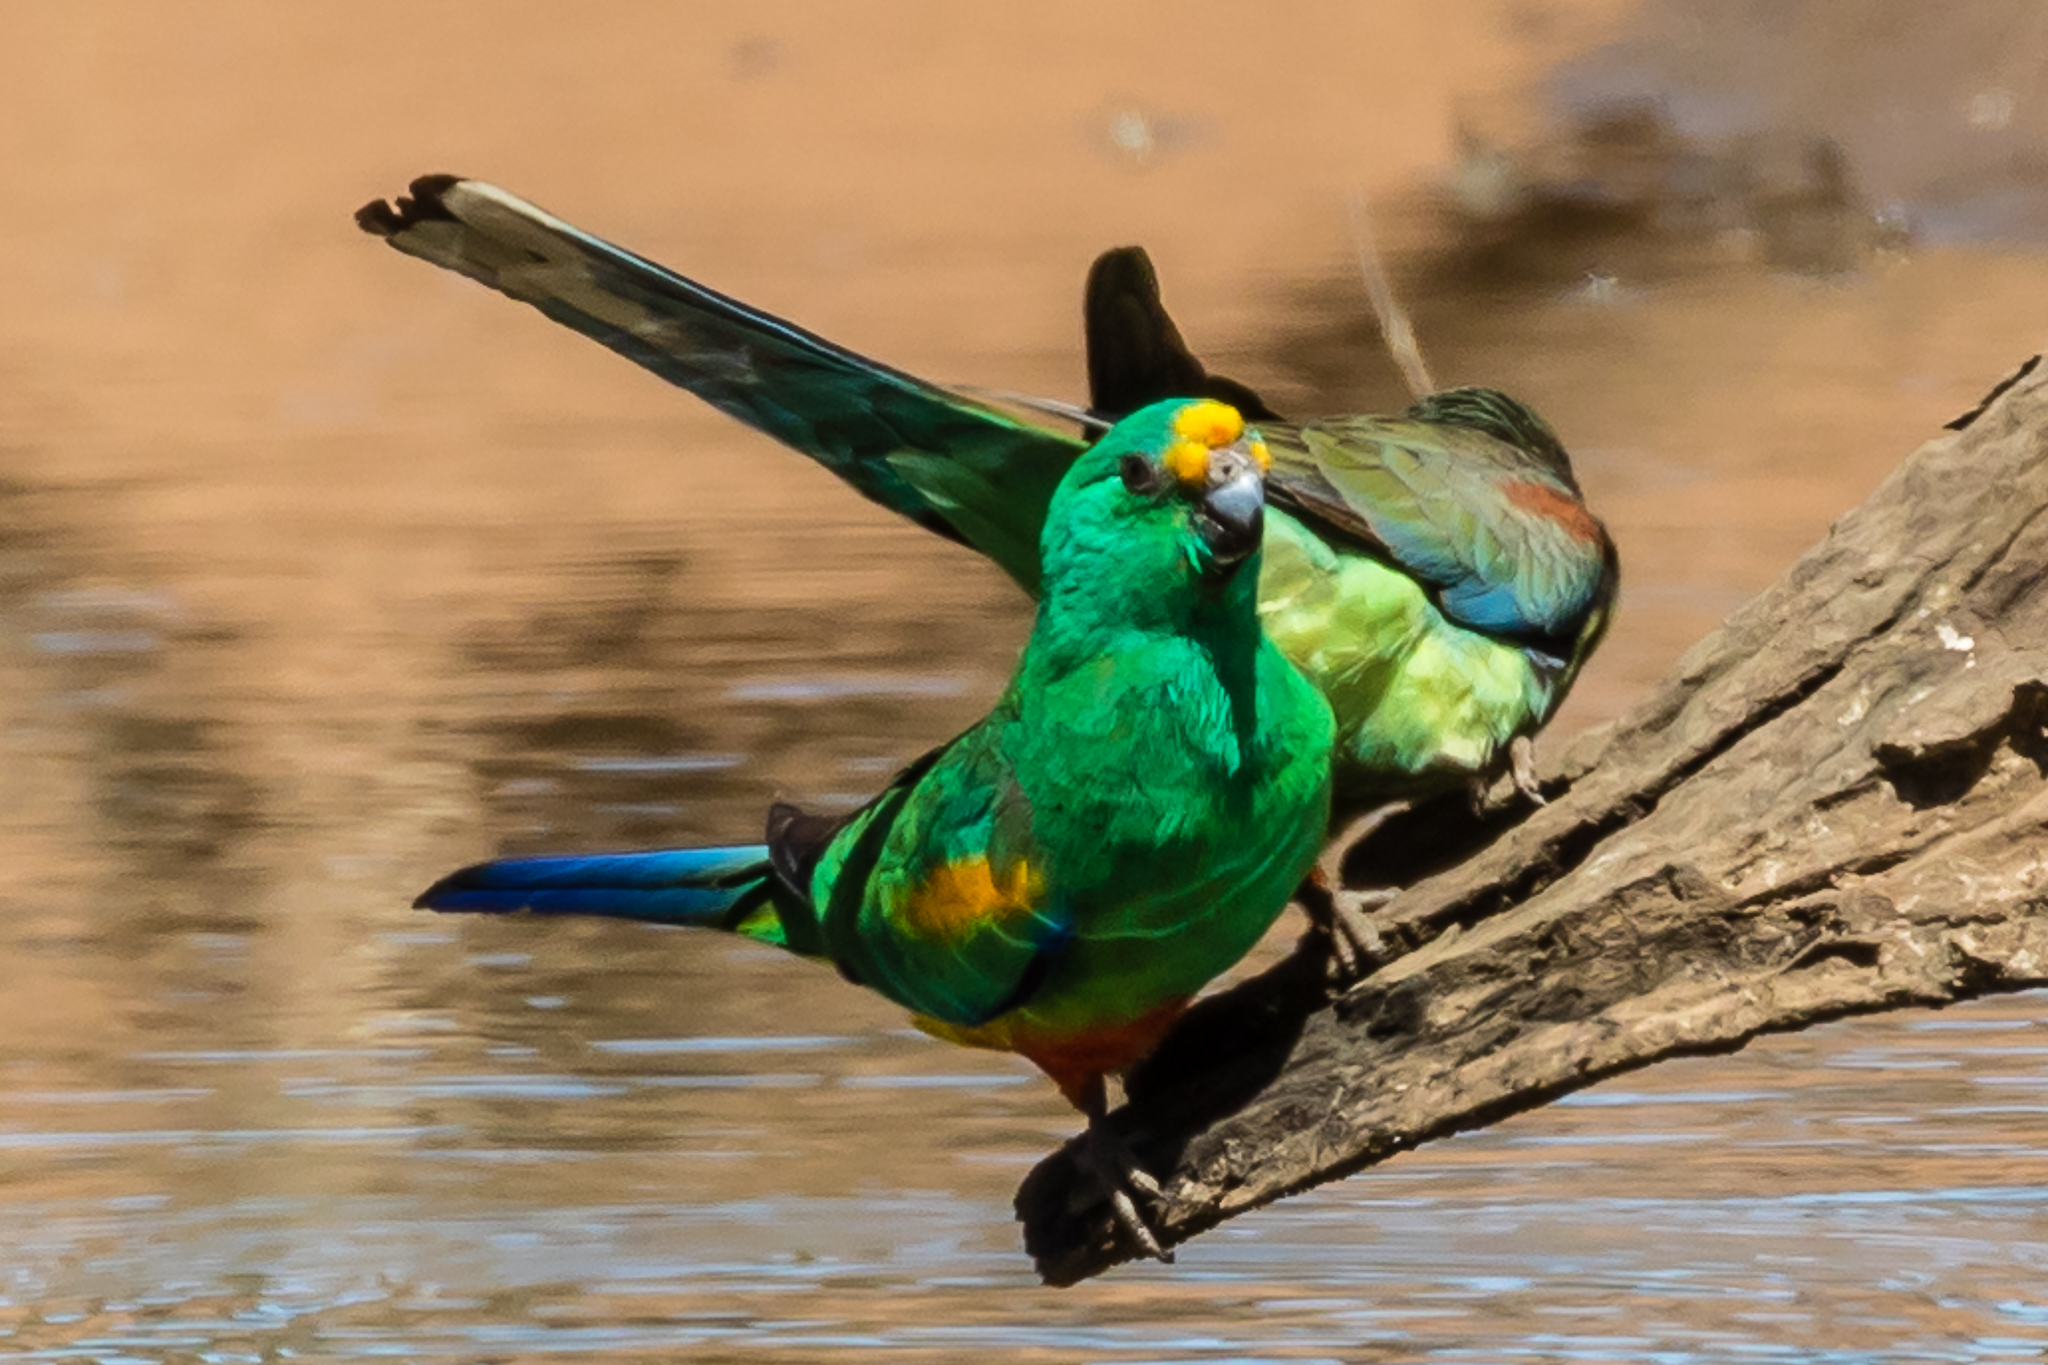 Beautiful Mulga Parrots fly down to drink at a waterhole in Cocoparra National Park. They inhabit the arid scrublands and lightly timbered grasslands in this area.